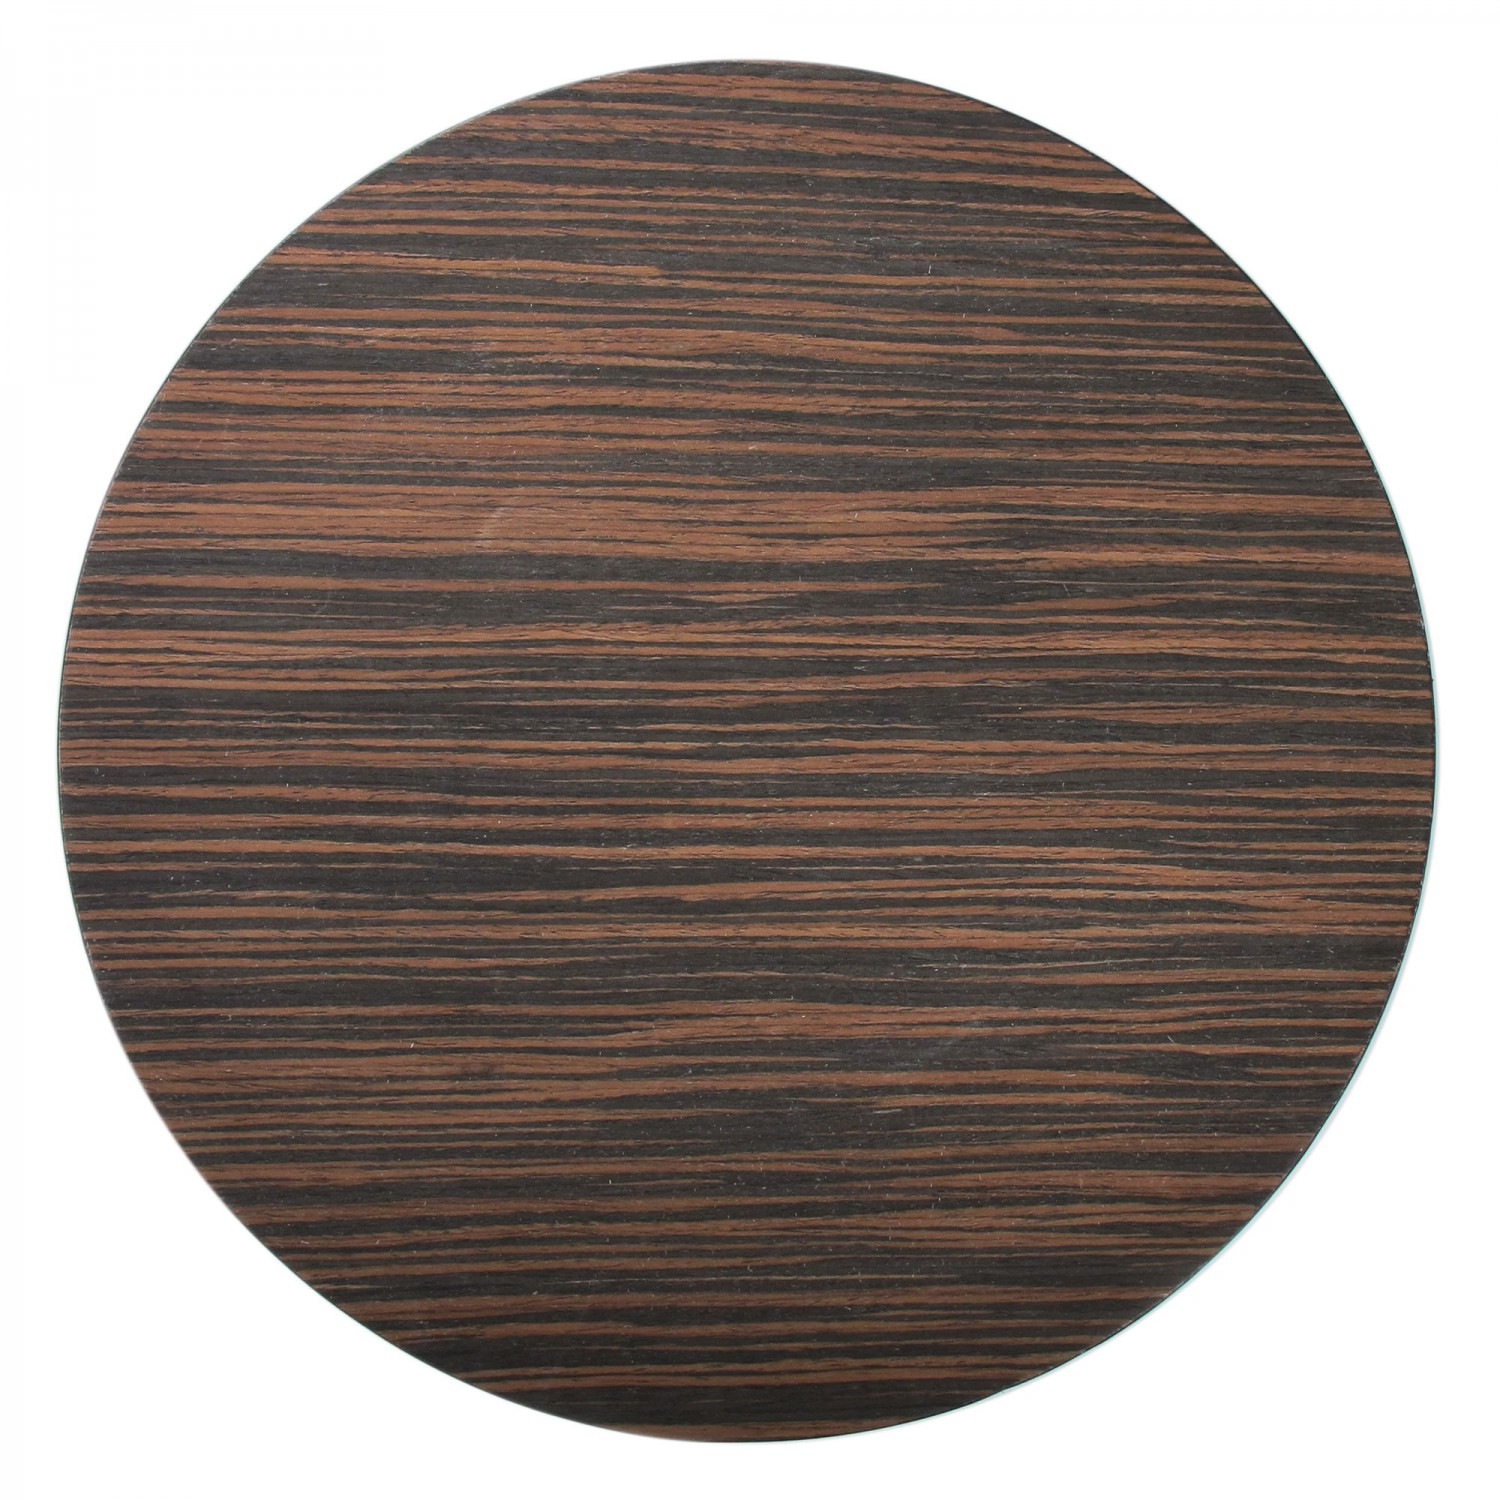 The Jay Companies 1270002 Round Brown Pine Faux Wood Charger Plate 13""